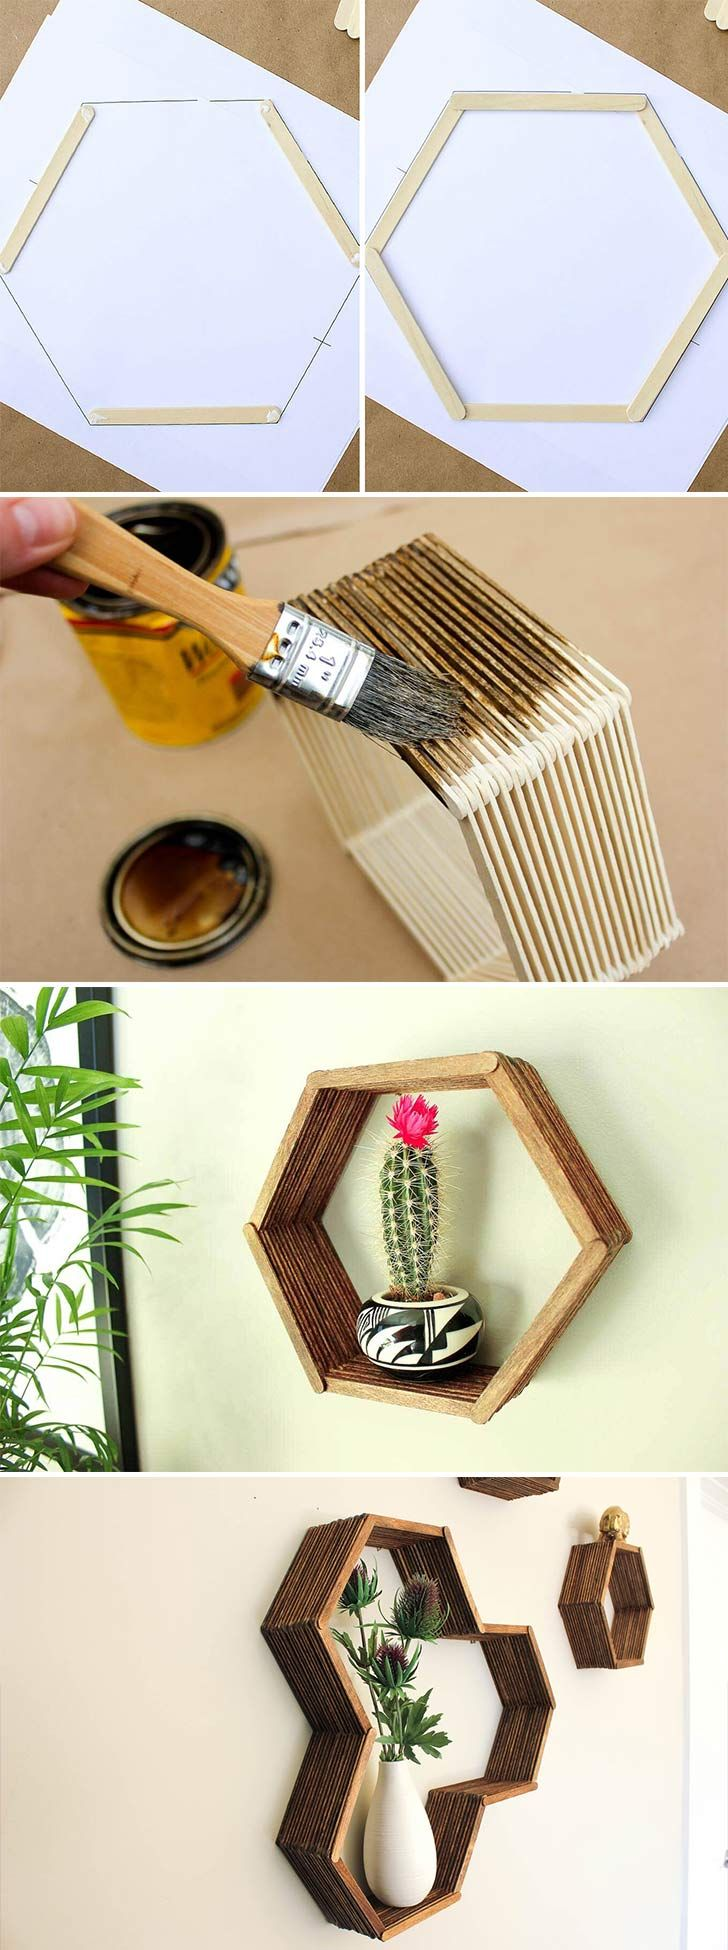 40 Amazing DIY Home Decor Ideas That Wonu0027t Look DIYed